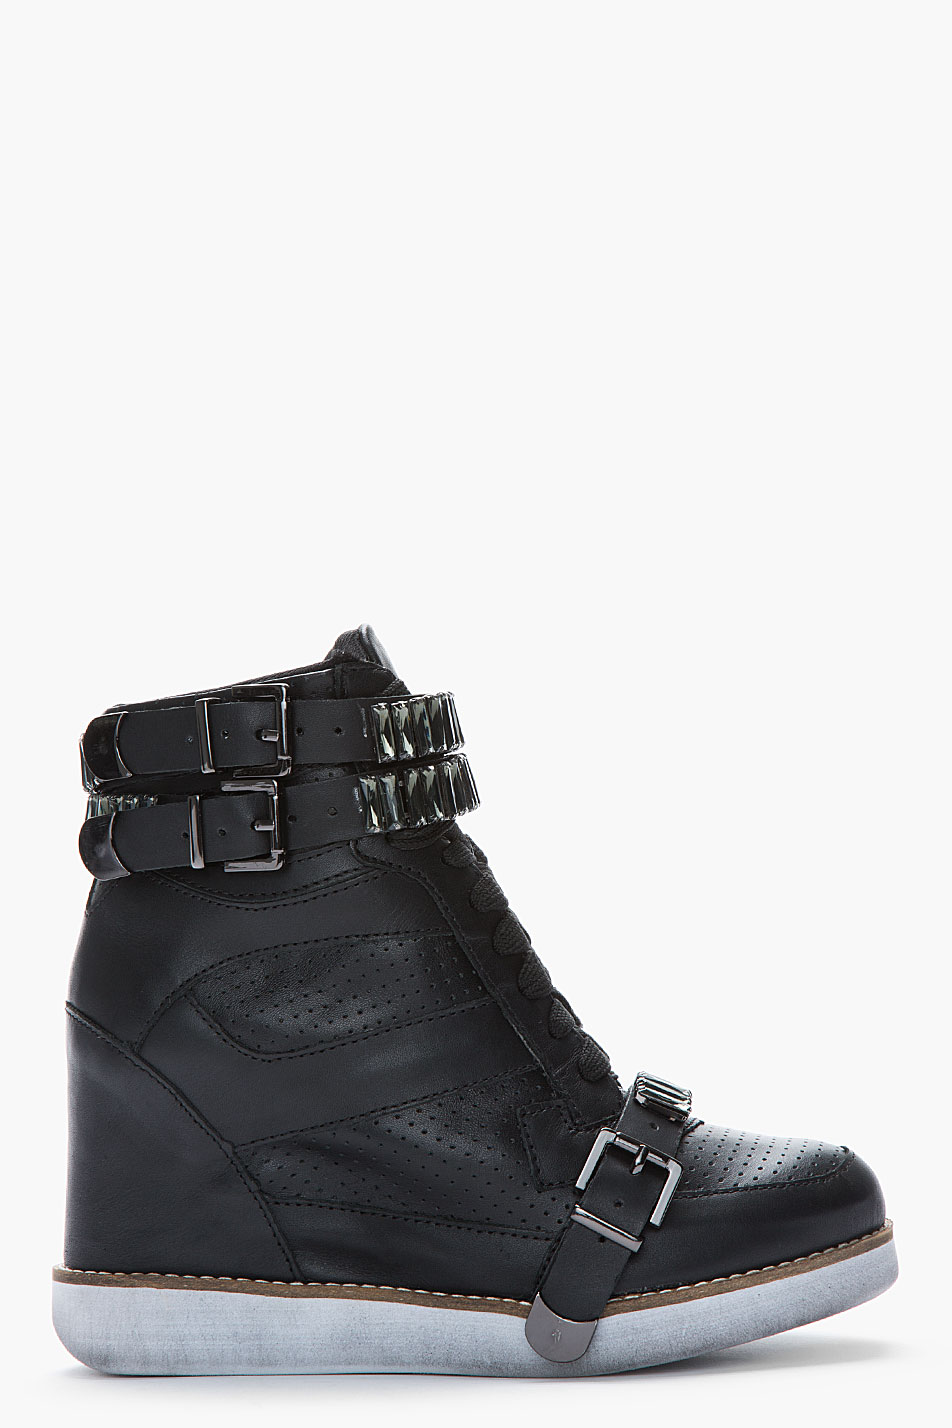 Jeffrey Campbel Shoes Black With Rose